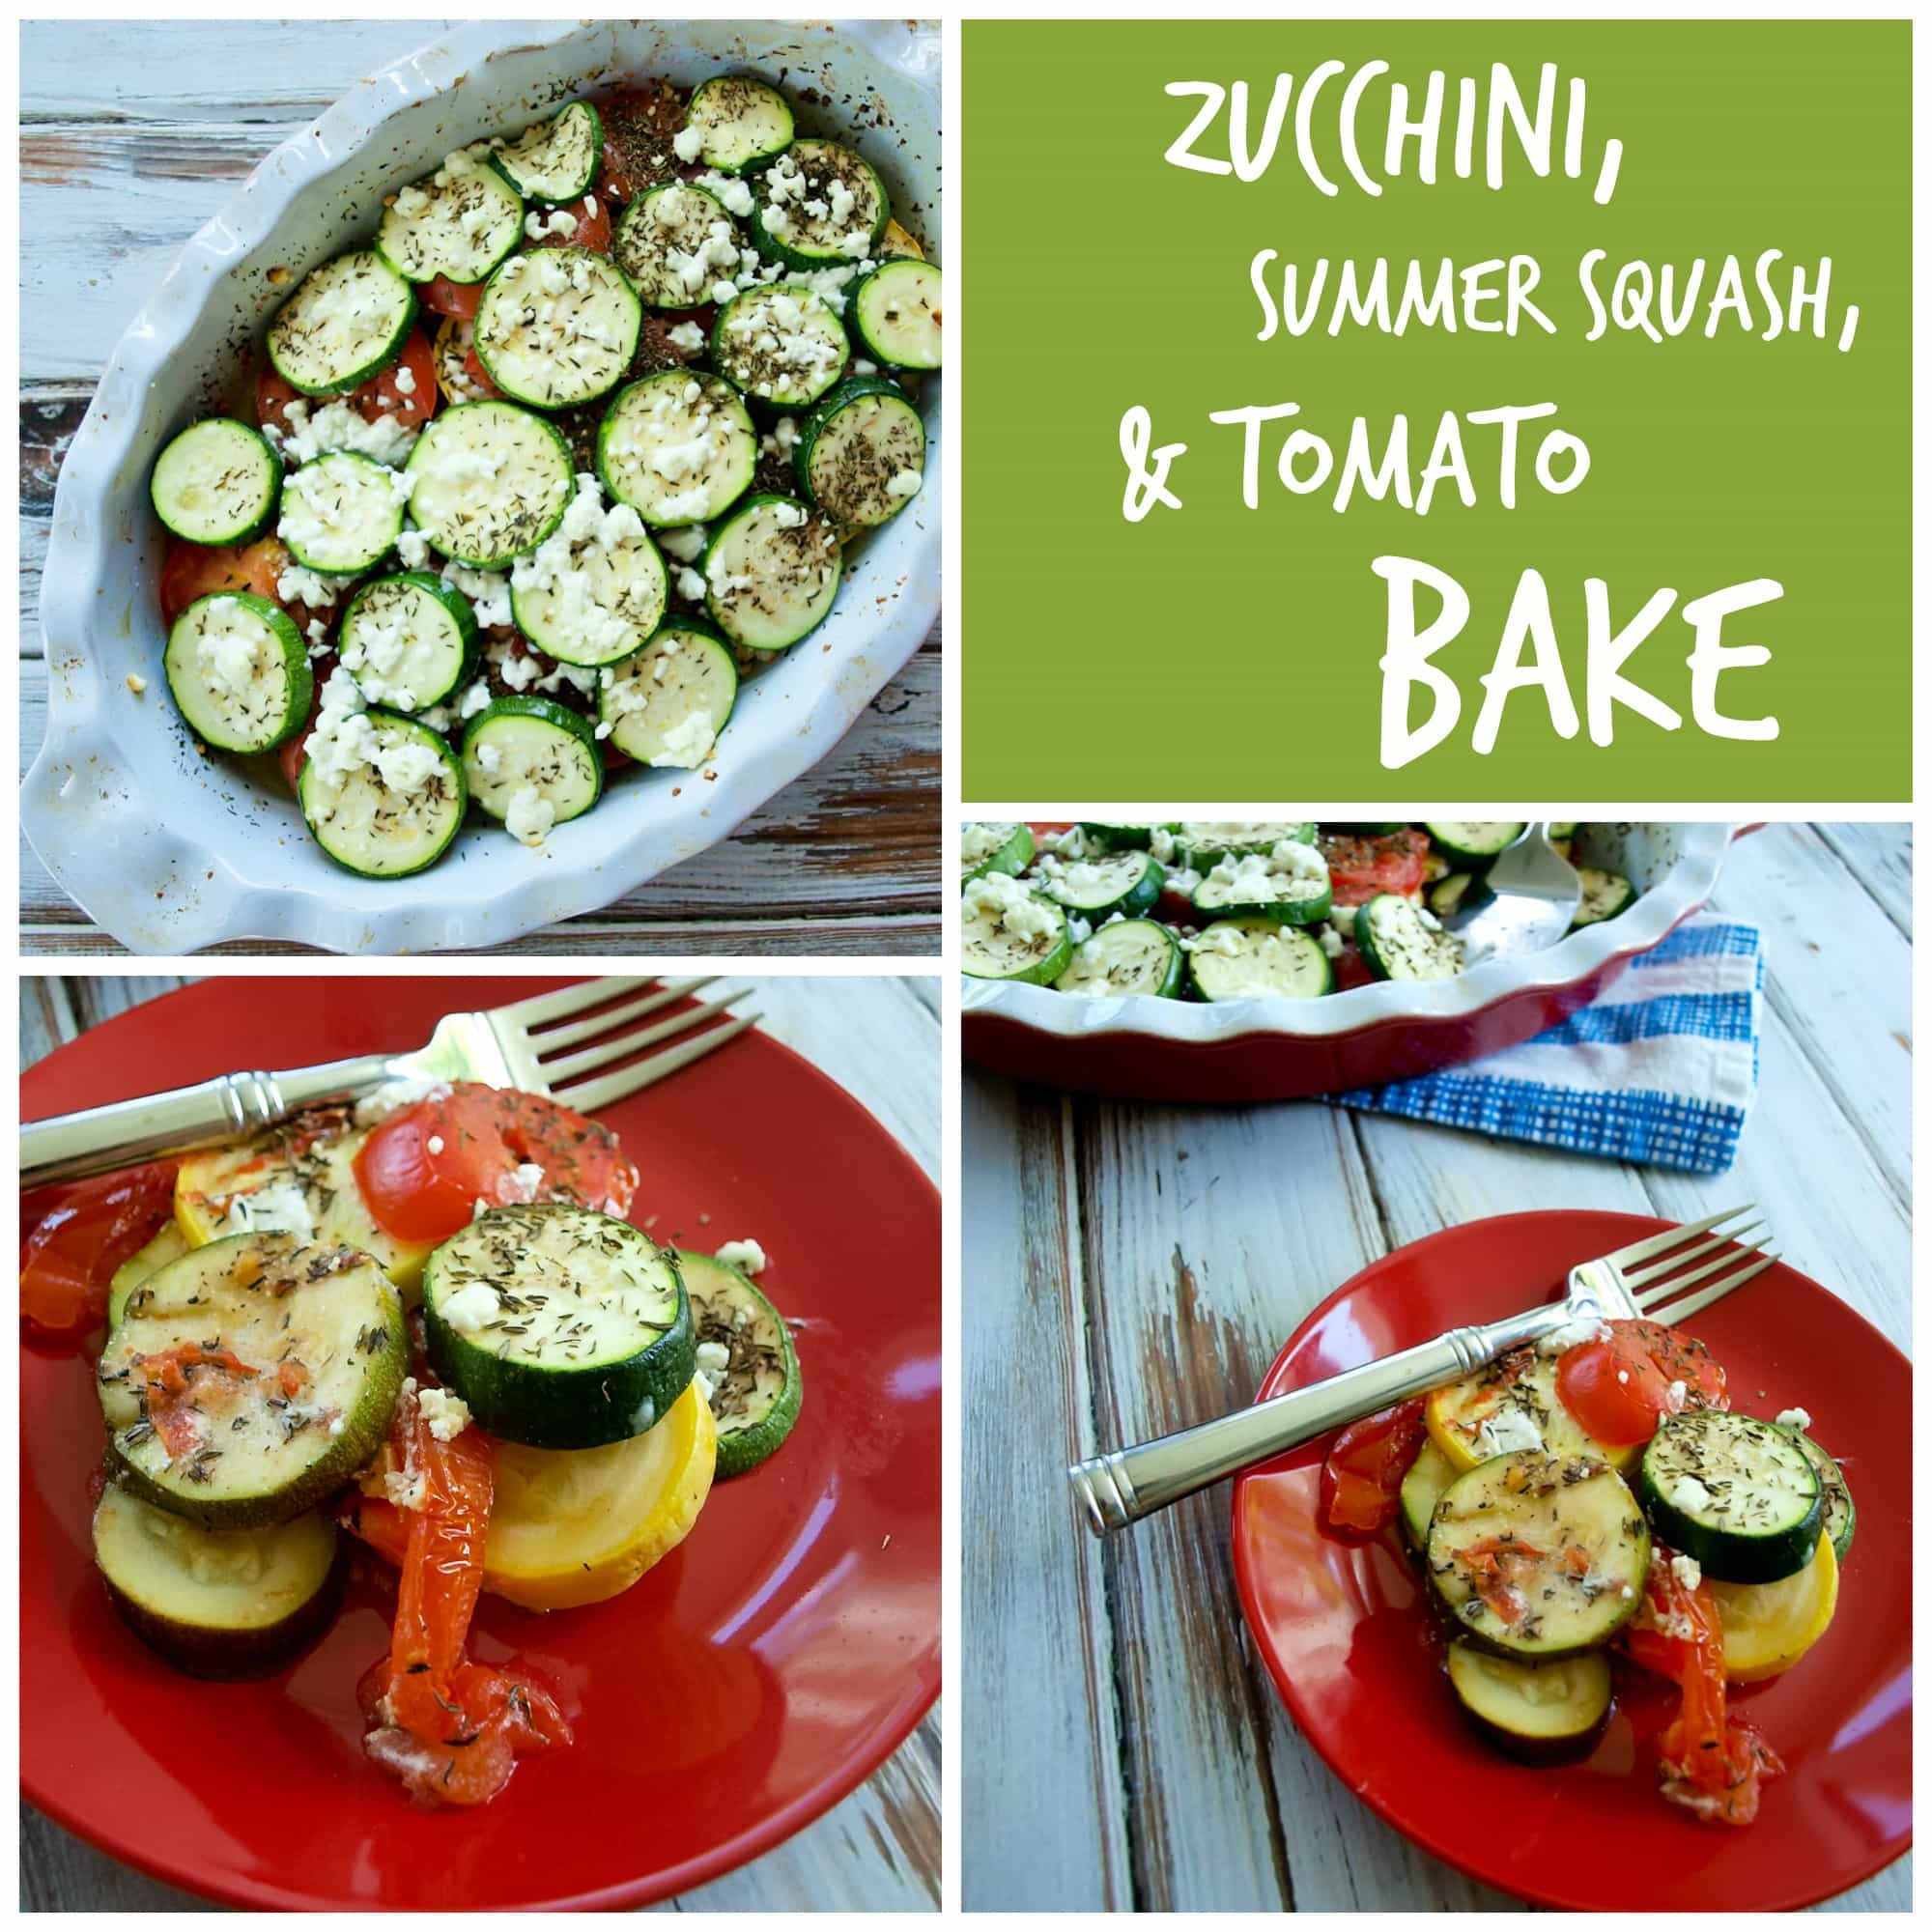 Zucchini, Summer Squash, and Tomato Bake